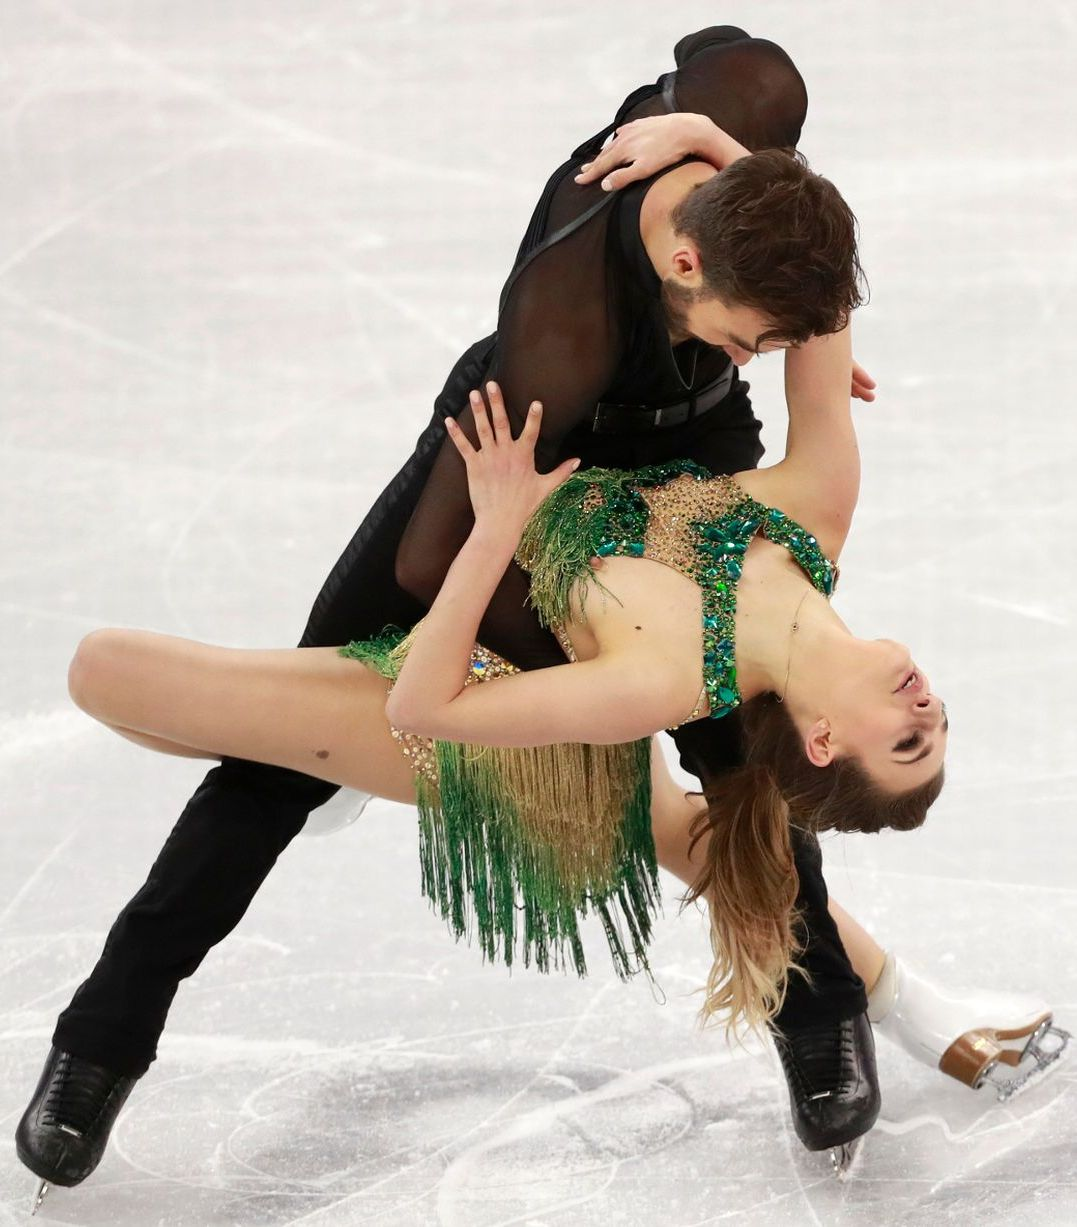 Bums out, nip slips and costume rips: Jaw-dropping wardrobe malfunctions at sporting events after skater's Winter Olympics nightmare.